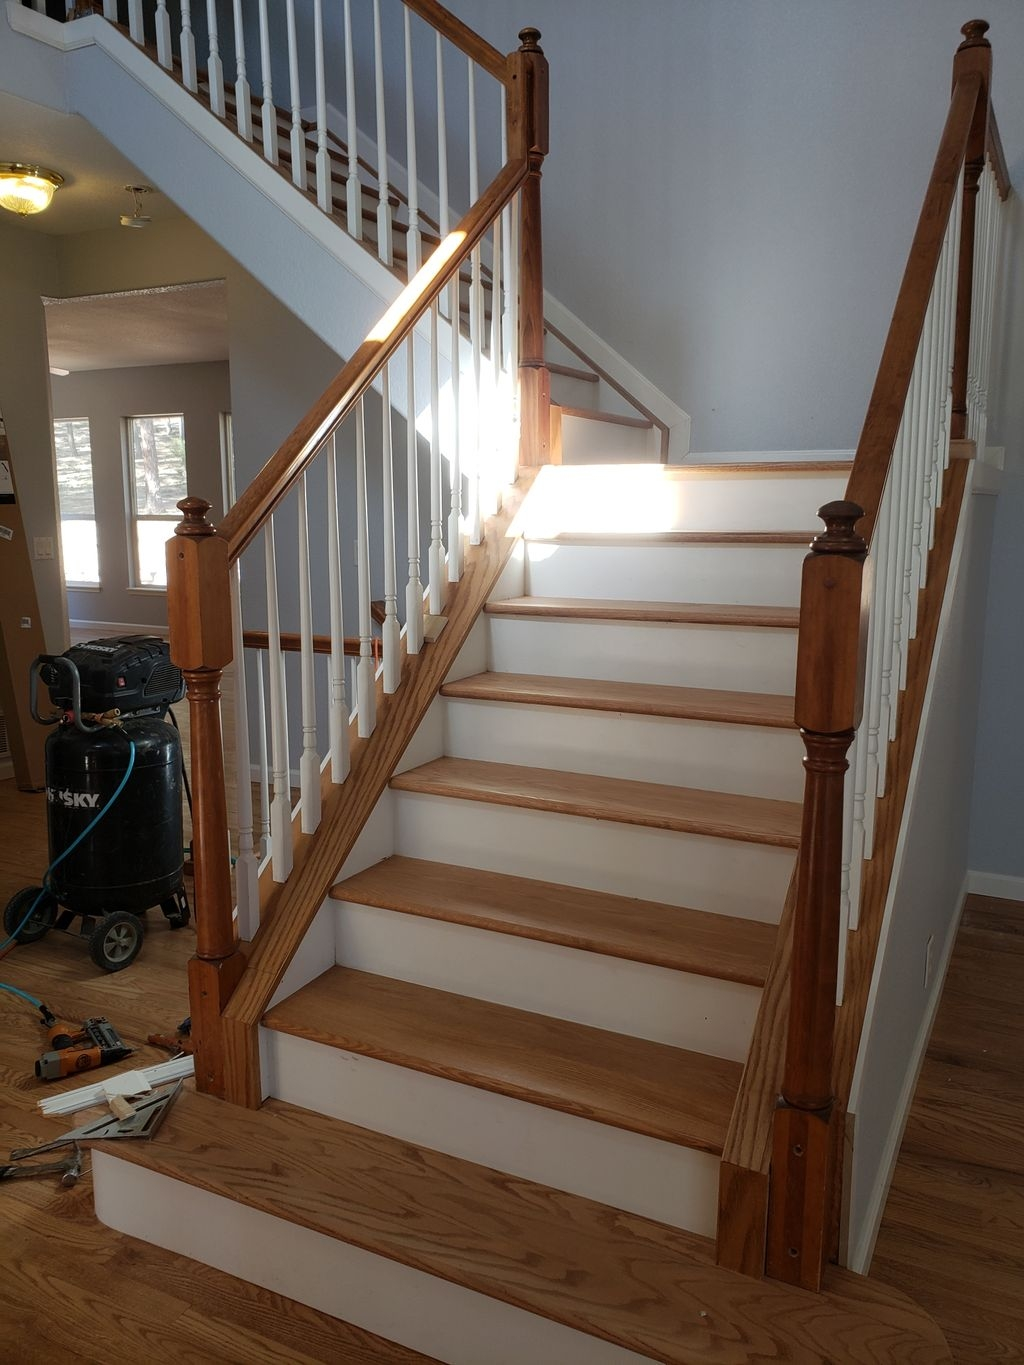 Creations Hardwoods Colorado Springs Co   Staircase Refinishing Near Me   Basement   Restaining   Brown Stained   White Riser   Grey Flooring